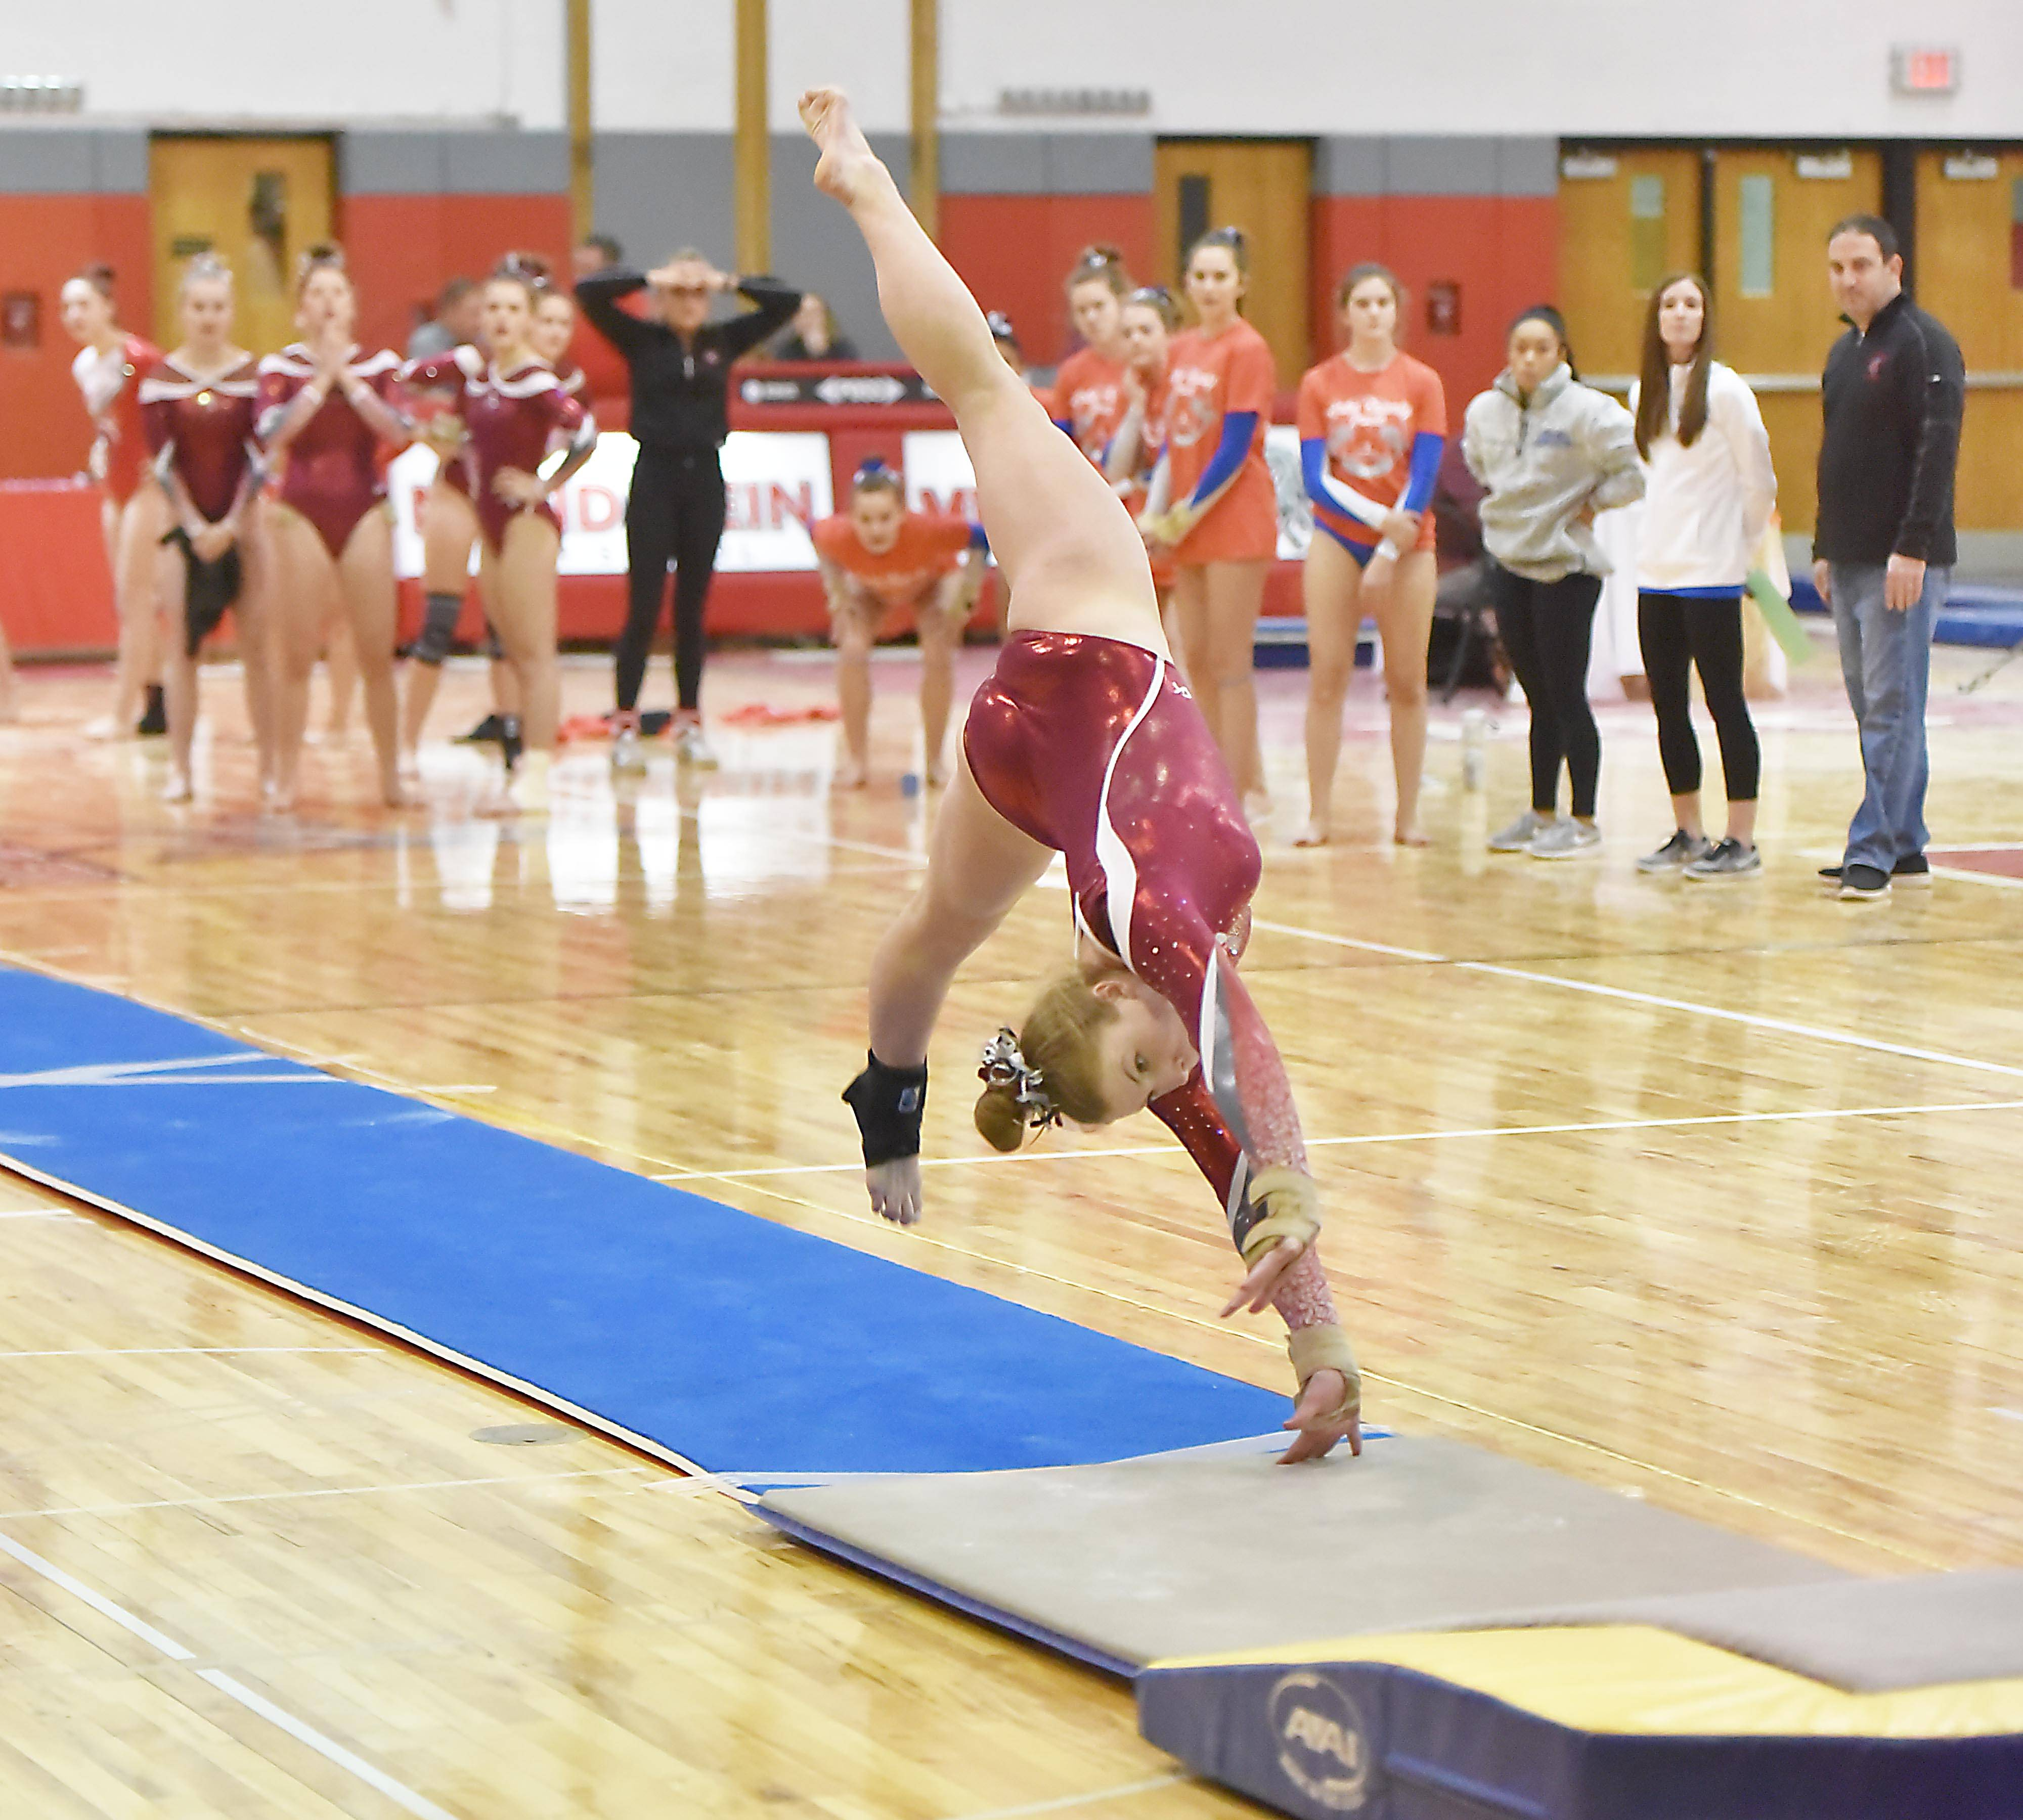 Mundelein's Emma Hallin flips into her Vault at the Lake County girls gymnastics meet Saturday at Mundelein High School.